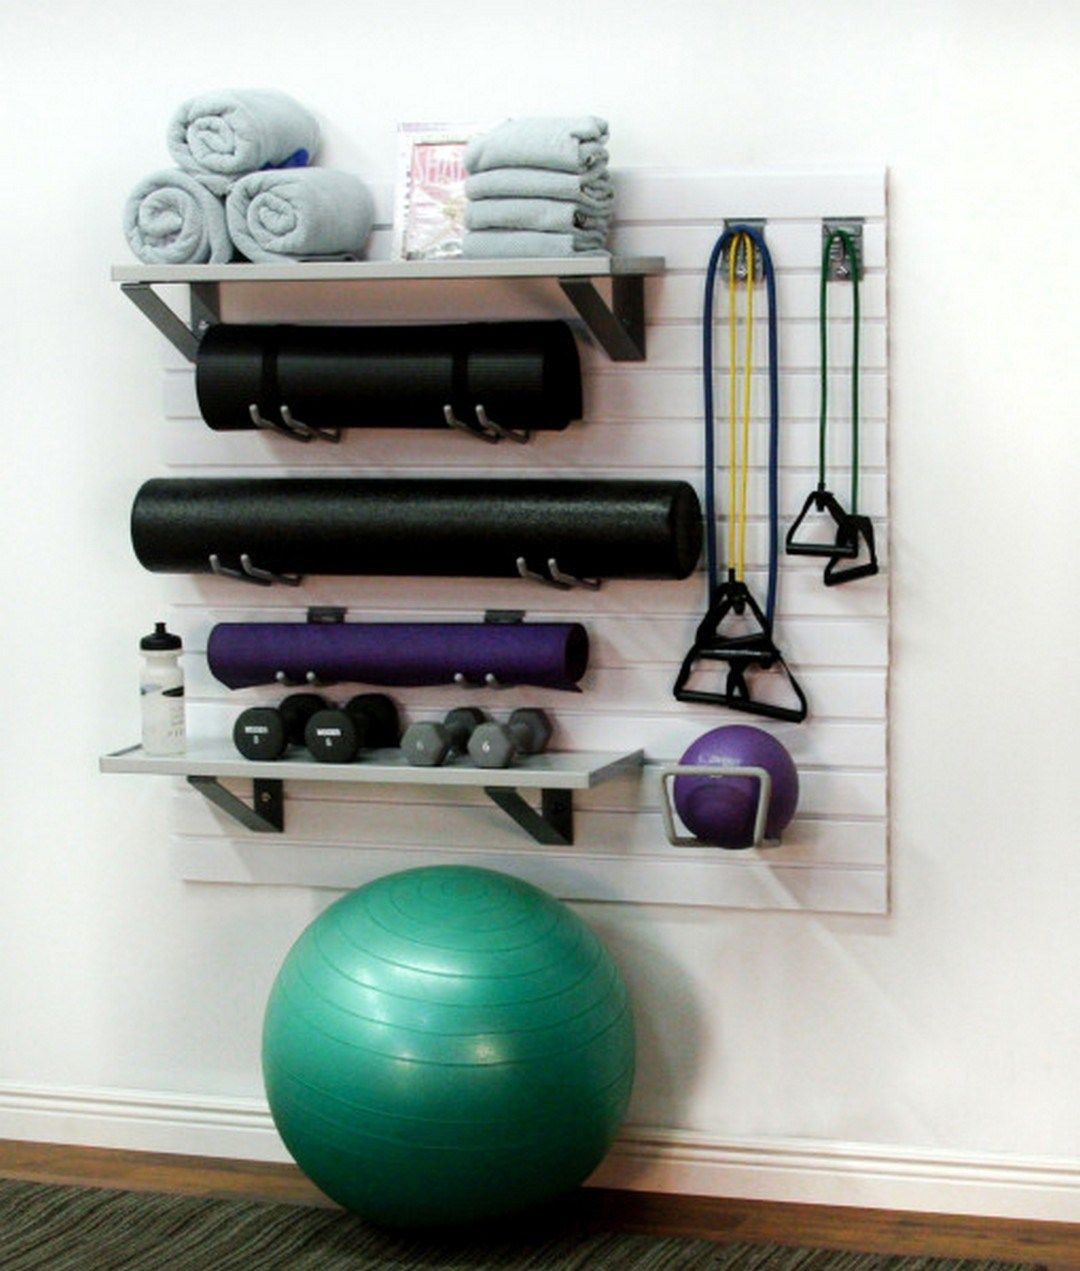 Home Gym Design Ideas Basement: Small Space Home Gym Decorating Ideas (9